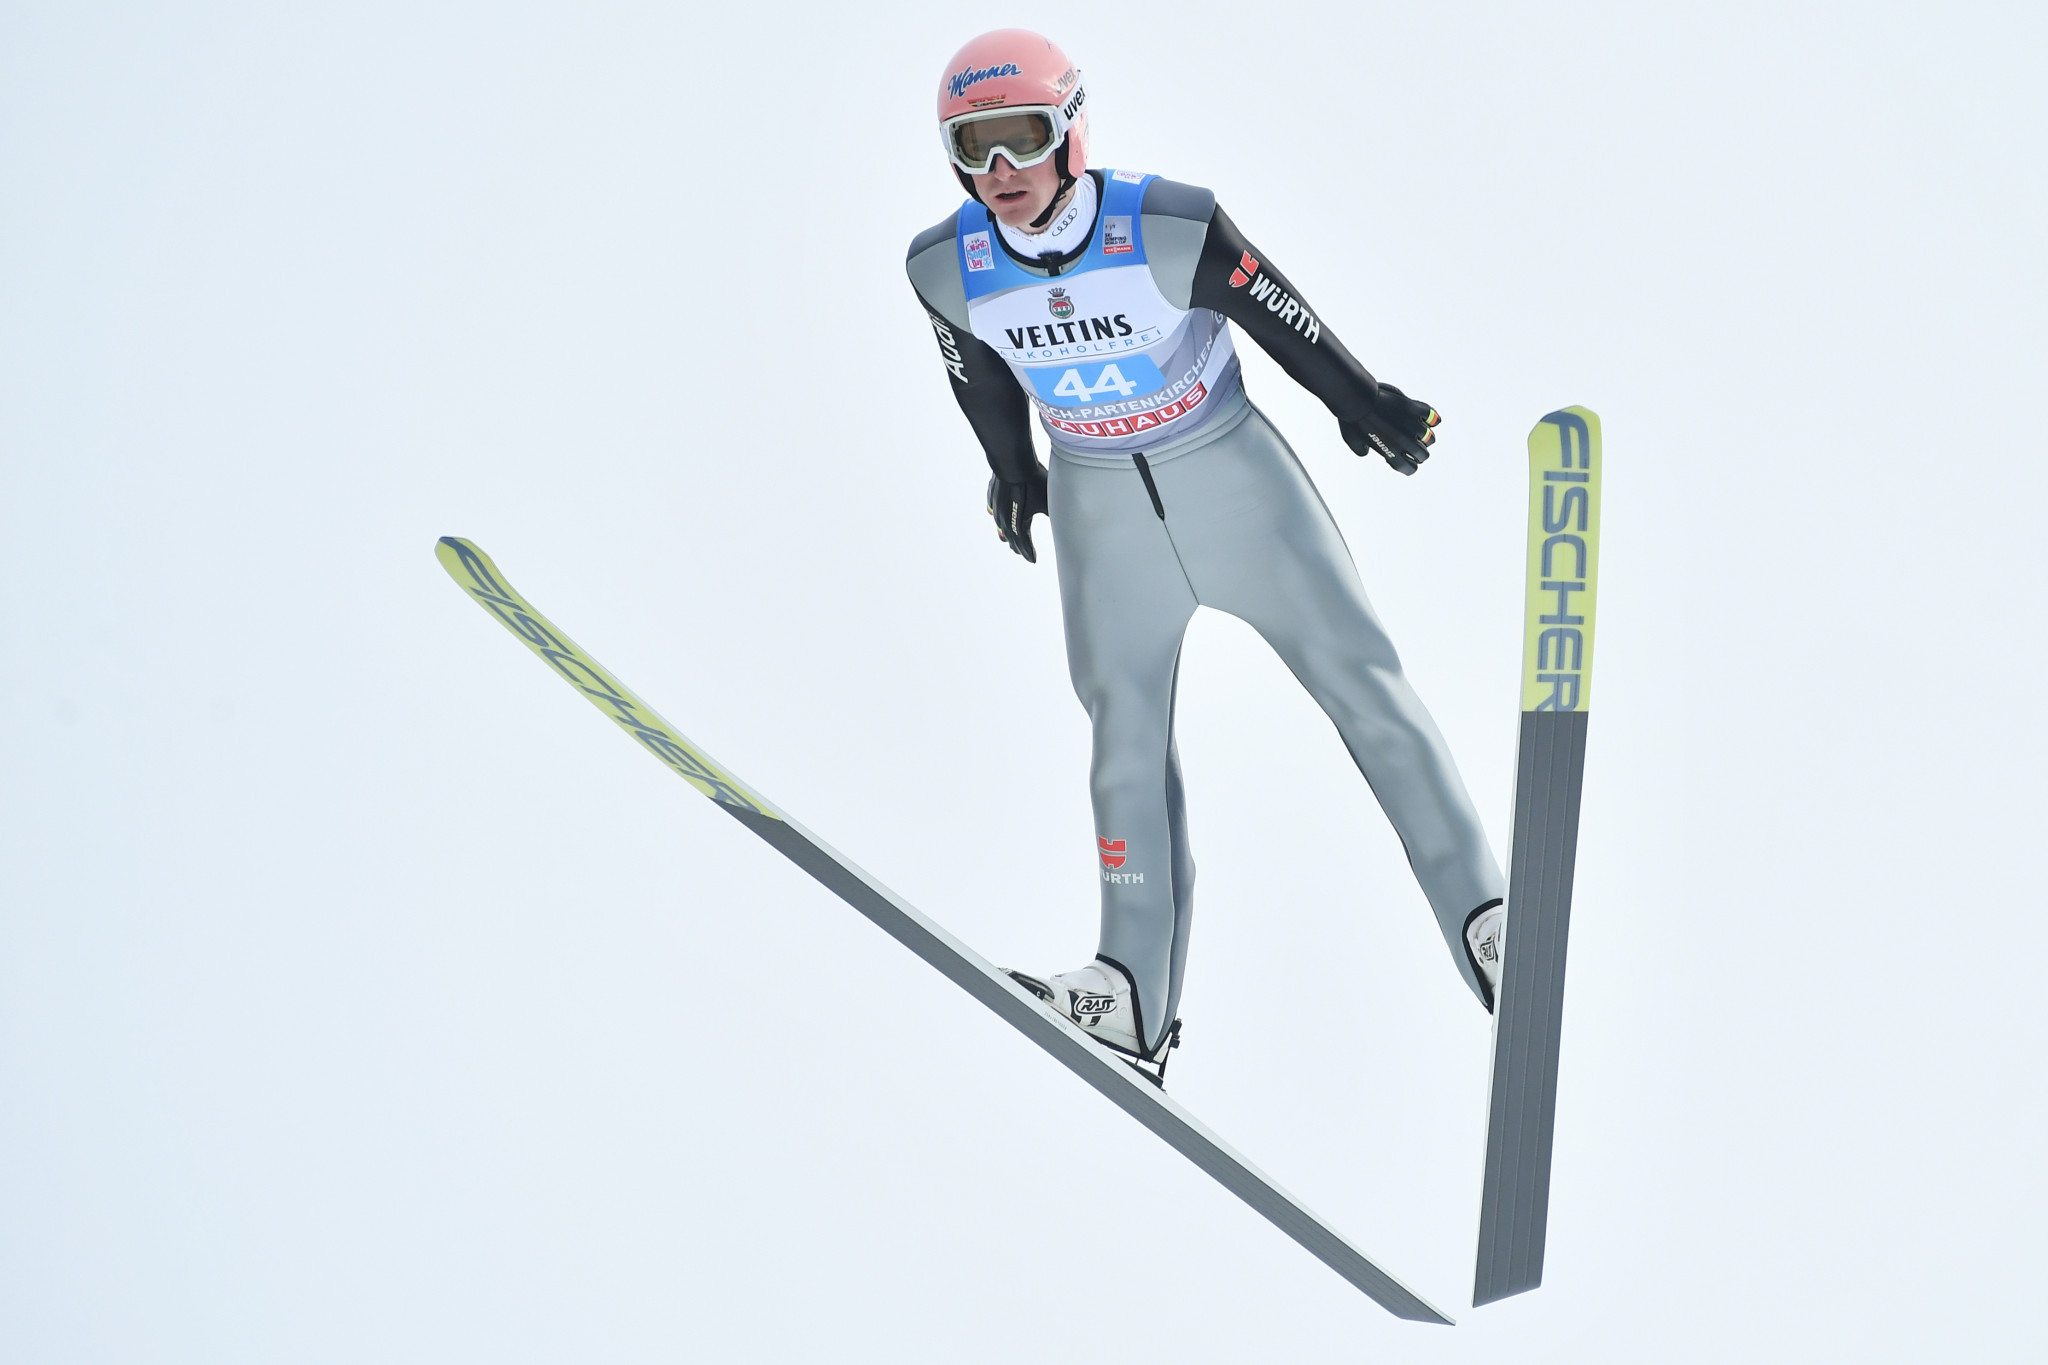 Severin Freund has won an Olympic gold medal in ski jumping ©Getty Images